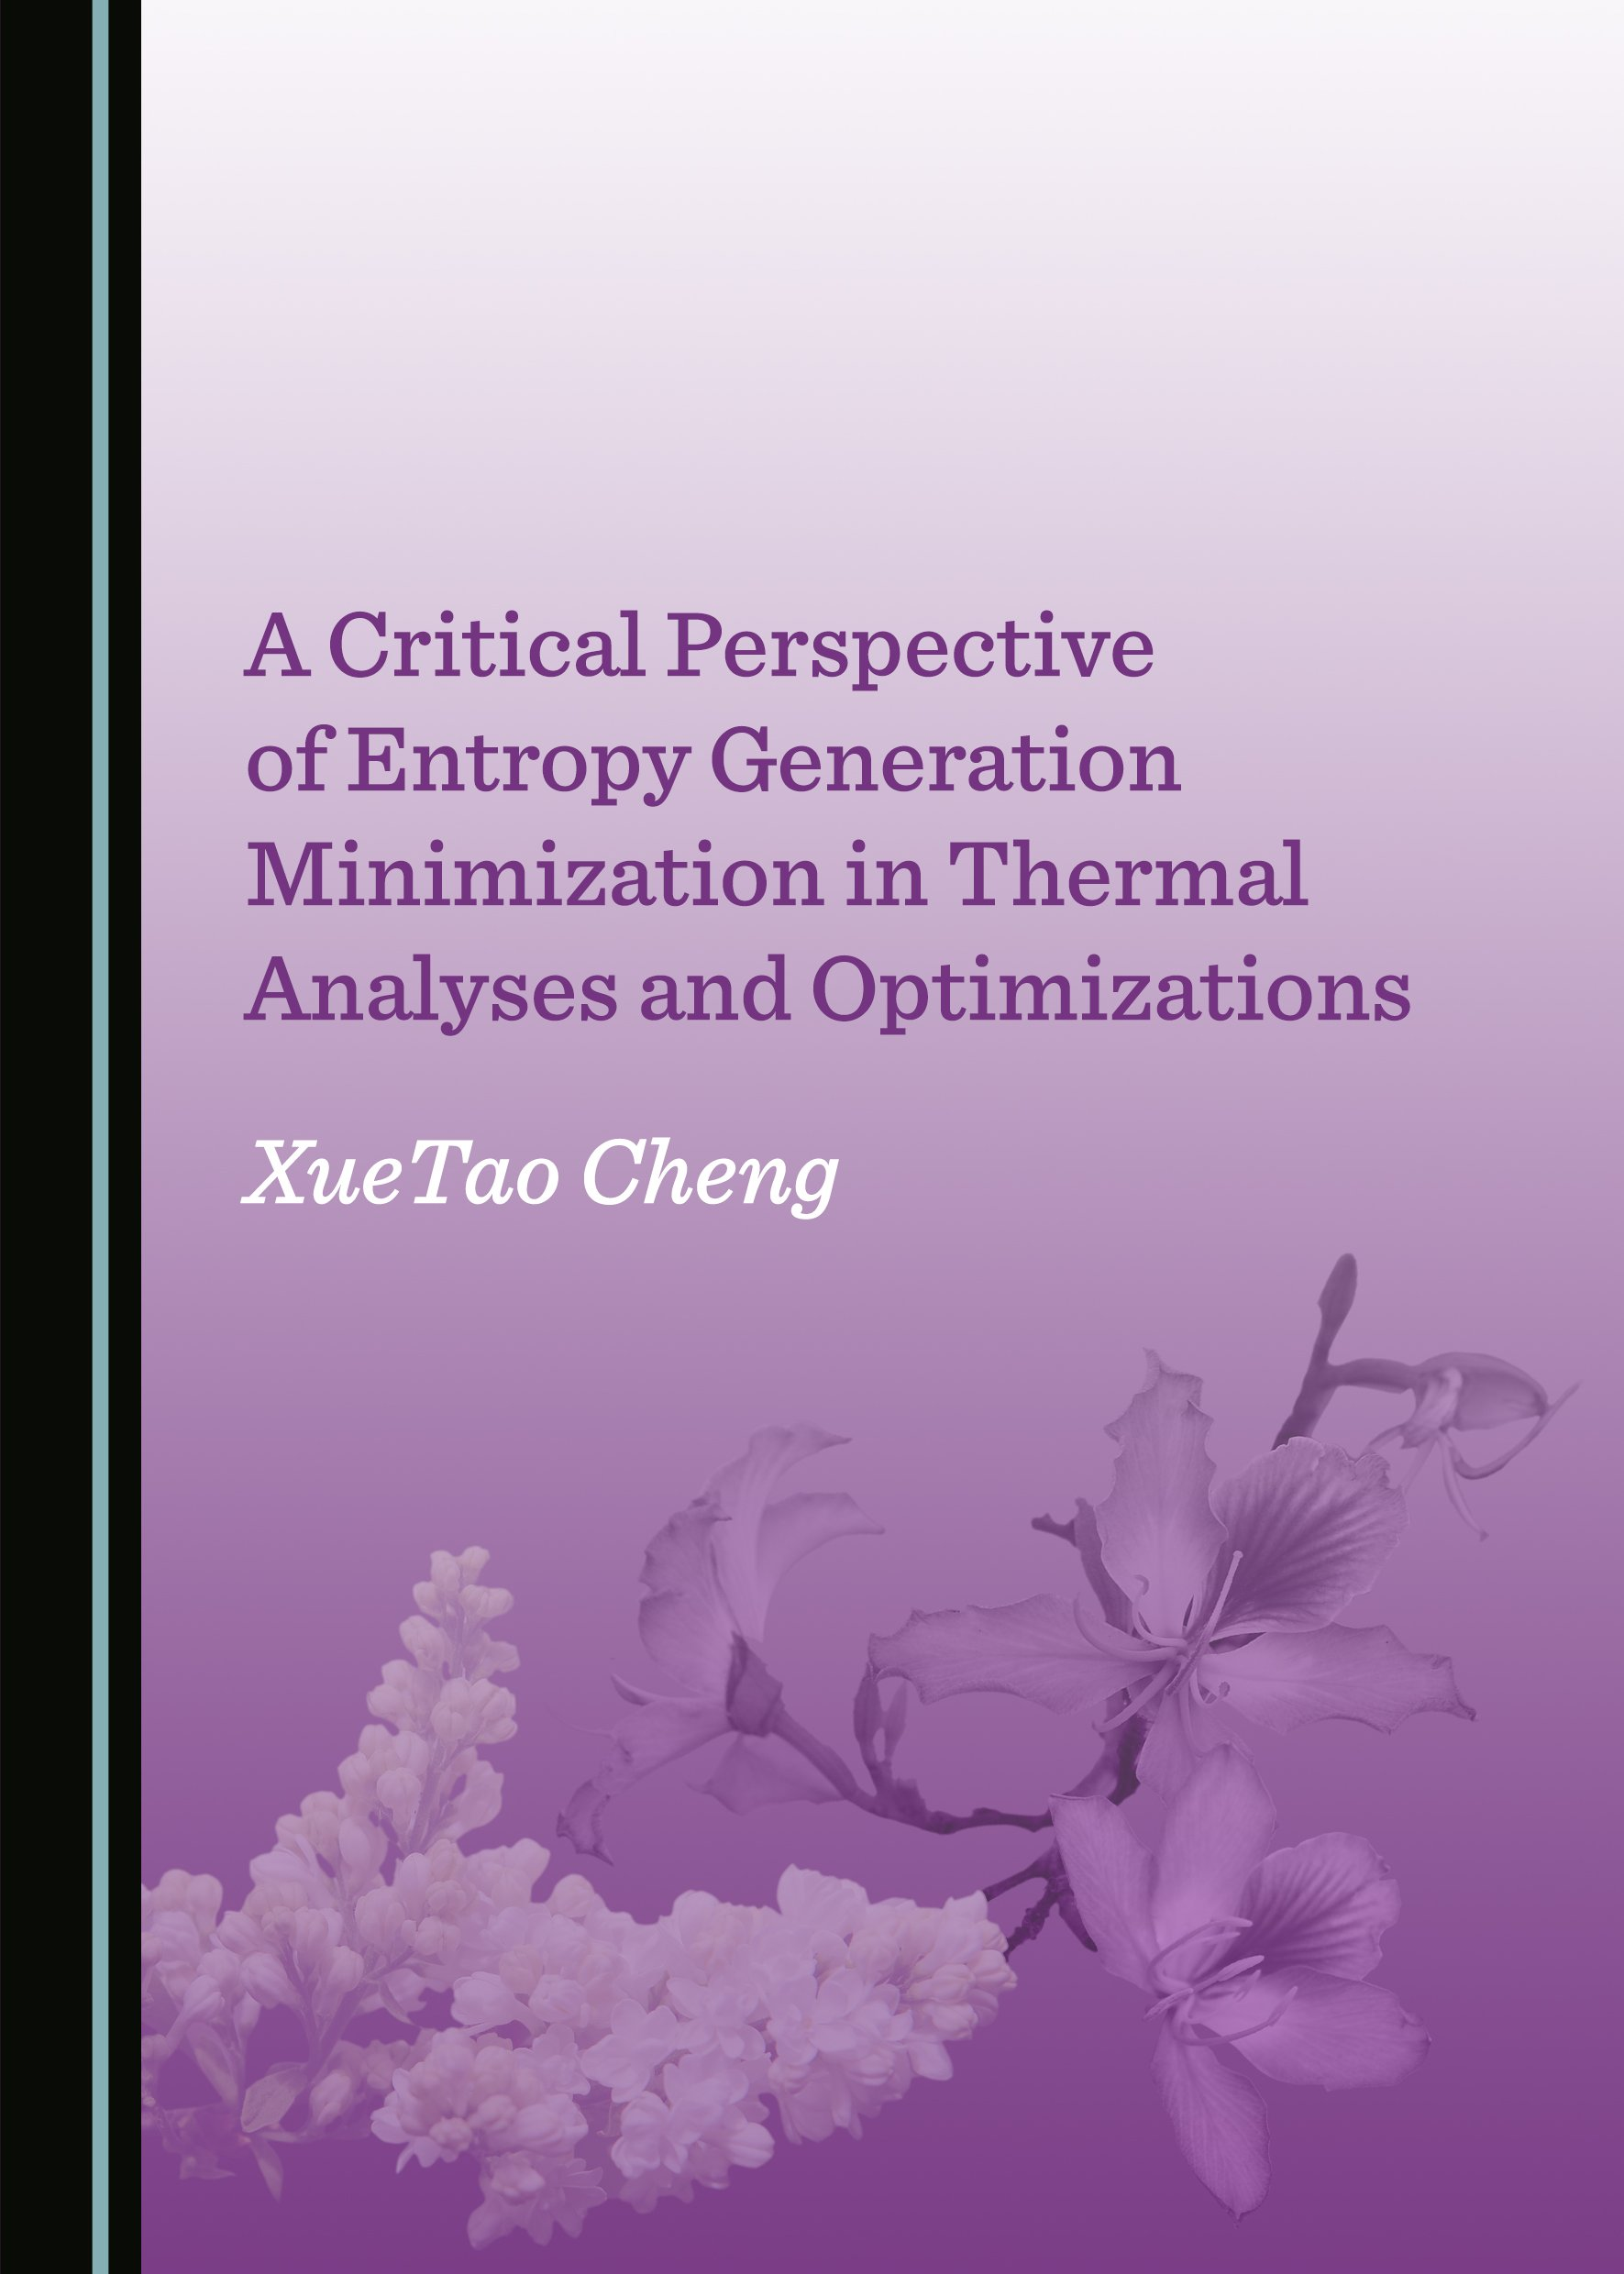 A Critical Perspective of Entropy Generation Minimization in Thermal Analyses and Optimizations